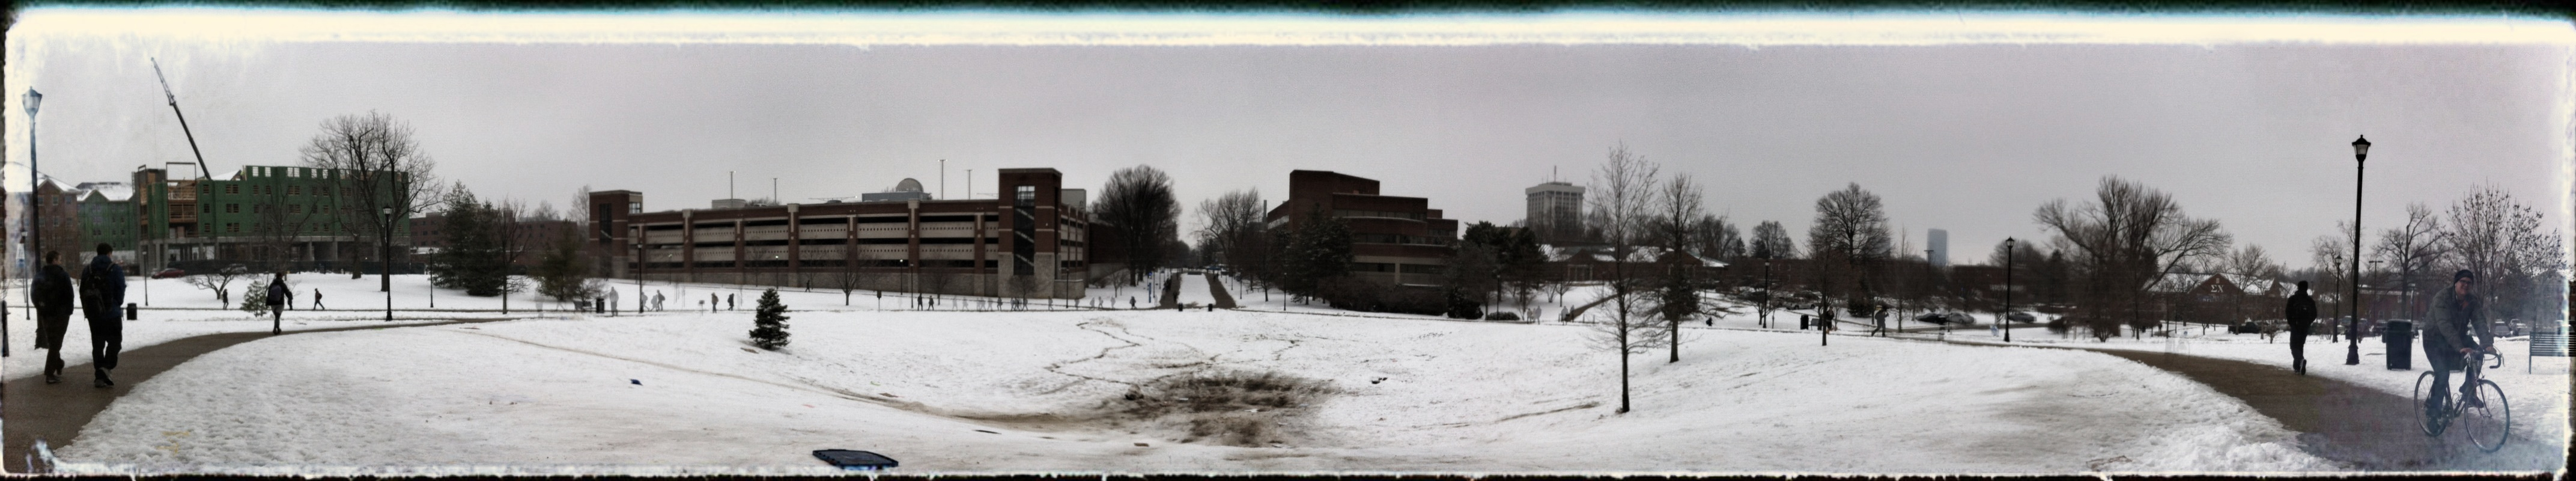 snow bowl (autostitch & snapseed)